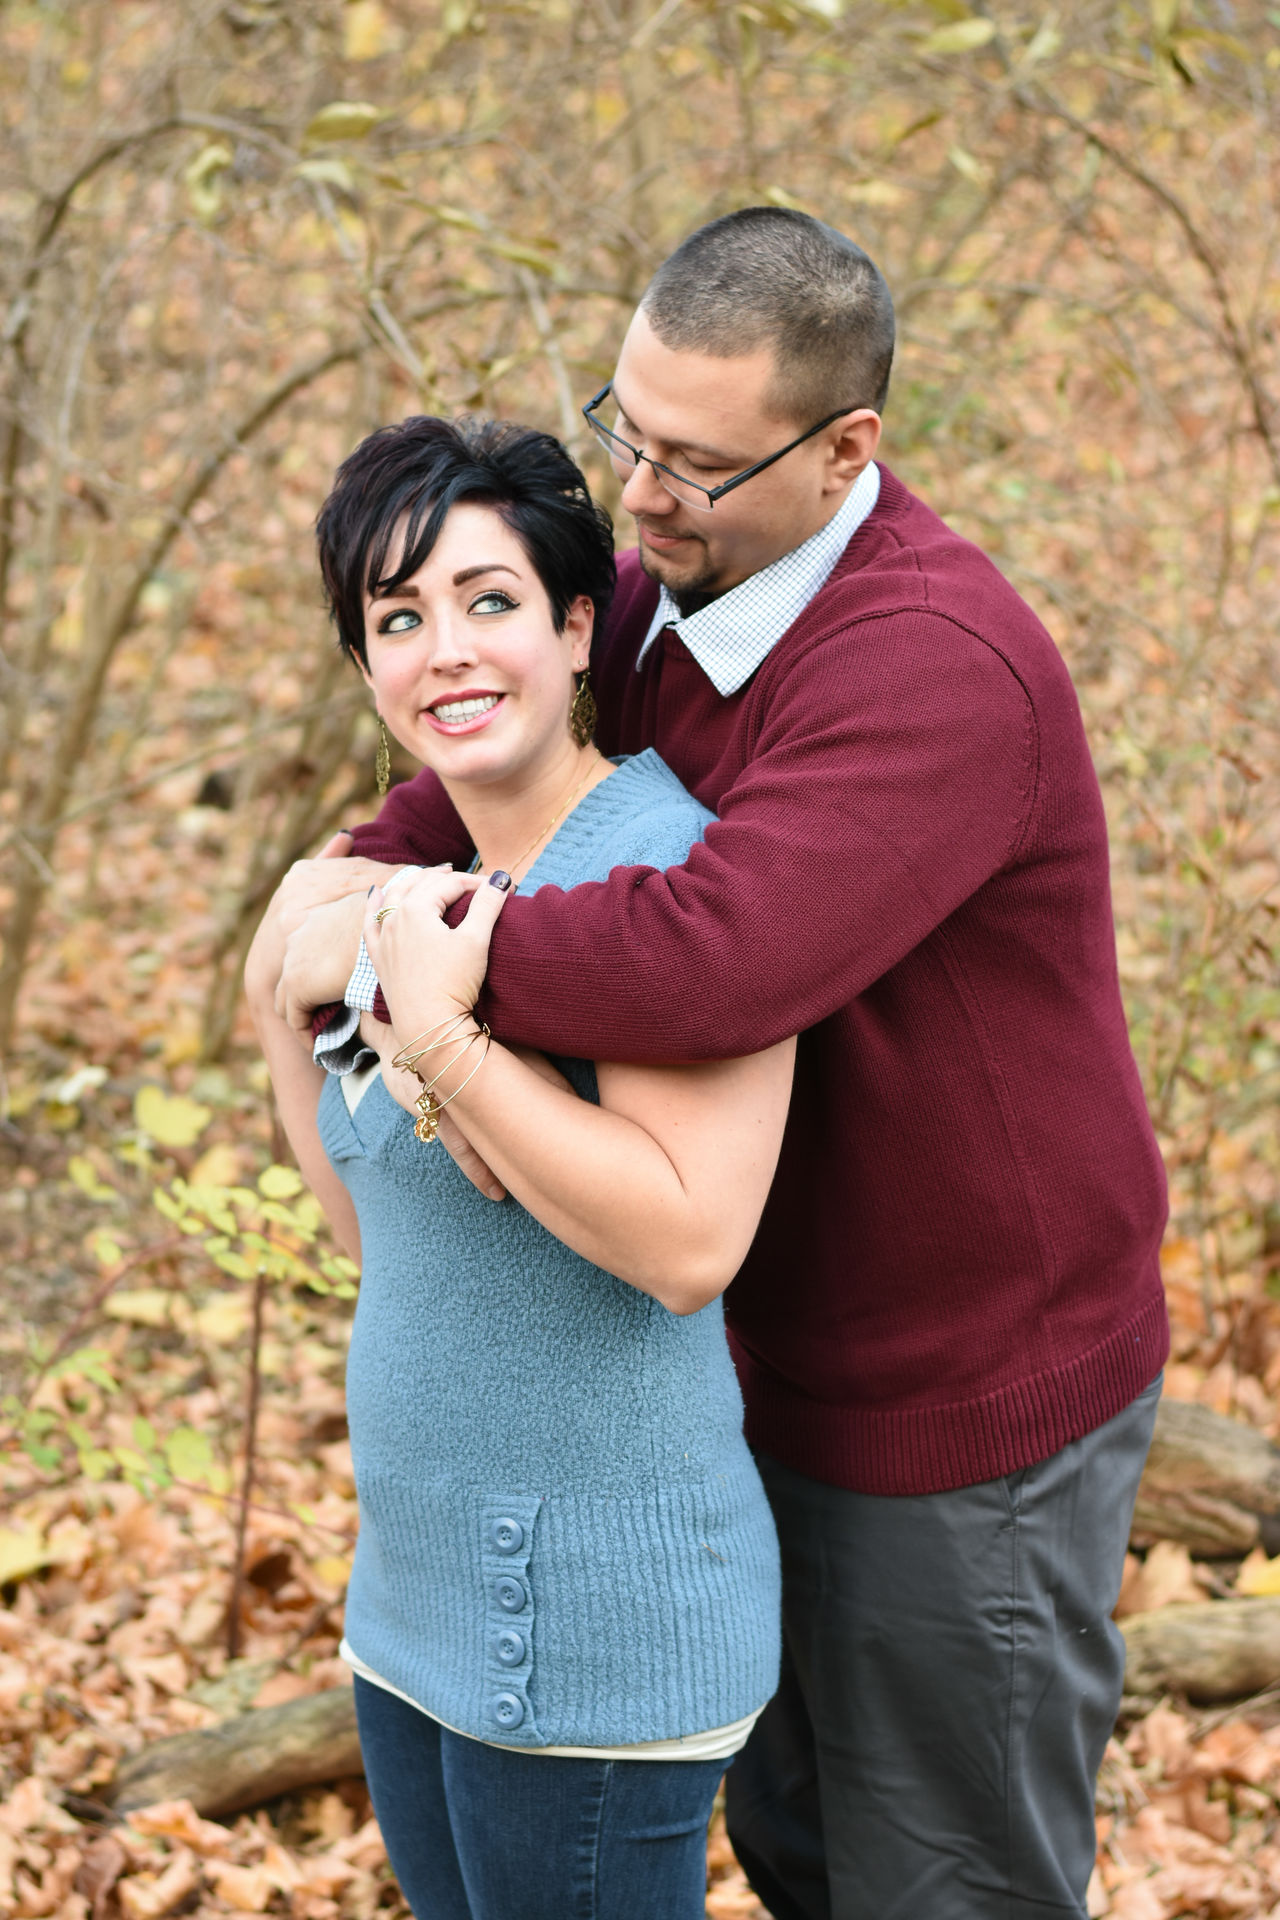 Passions. Two People Young Adult Portrait Couple - Relationship Young Women Togetherness Eyeglasses  Outdoors Adult People Adults Only Happiness Women Nature Smiling Tree Day Fall Autumn Photoshoot Fall Colors EyeEm Best Shots Friendship EyeEm Lifestyles